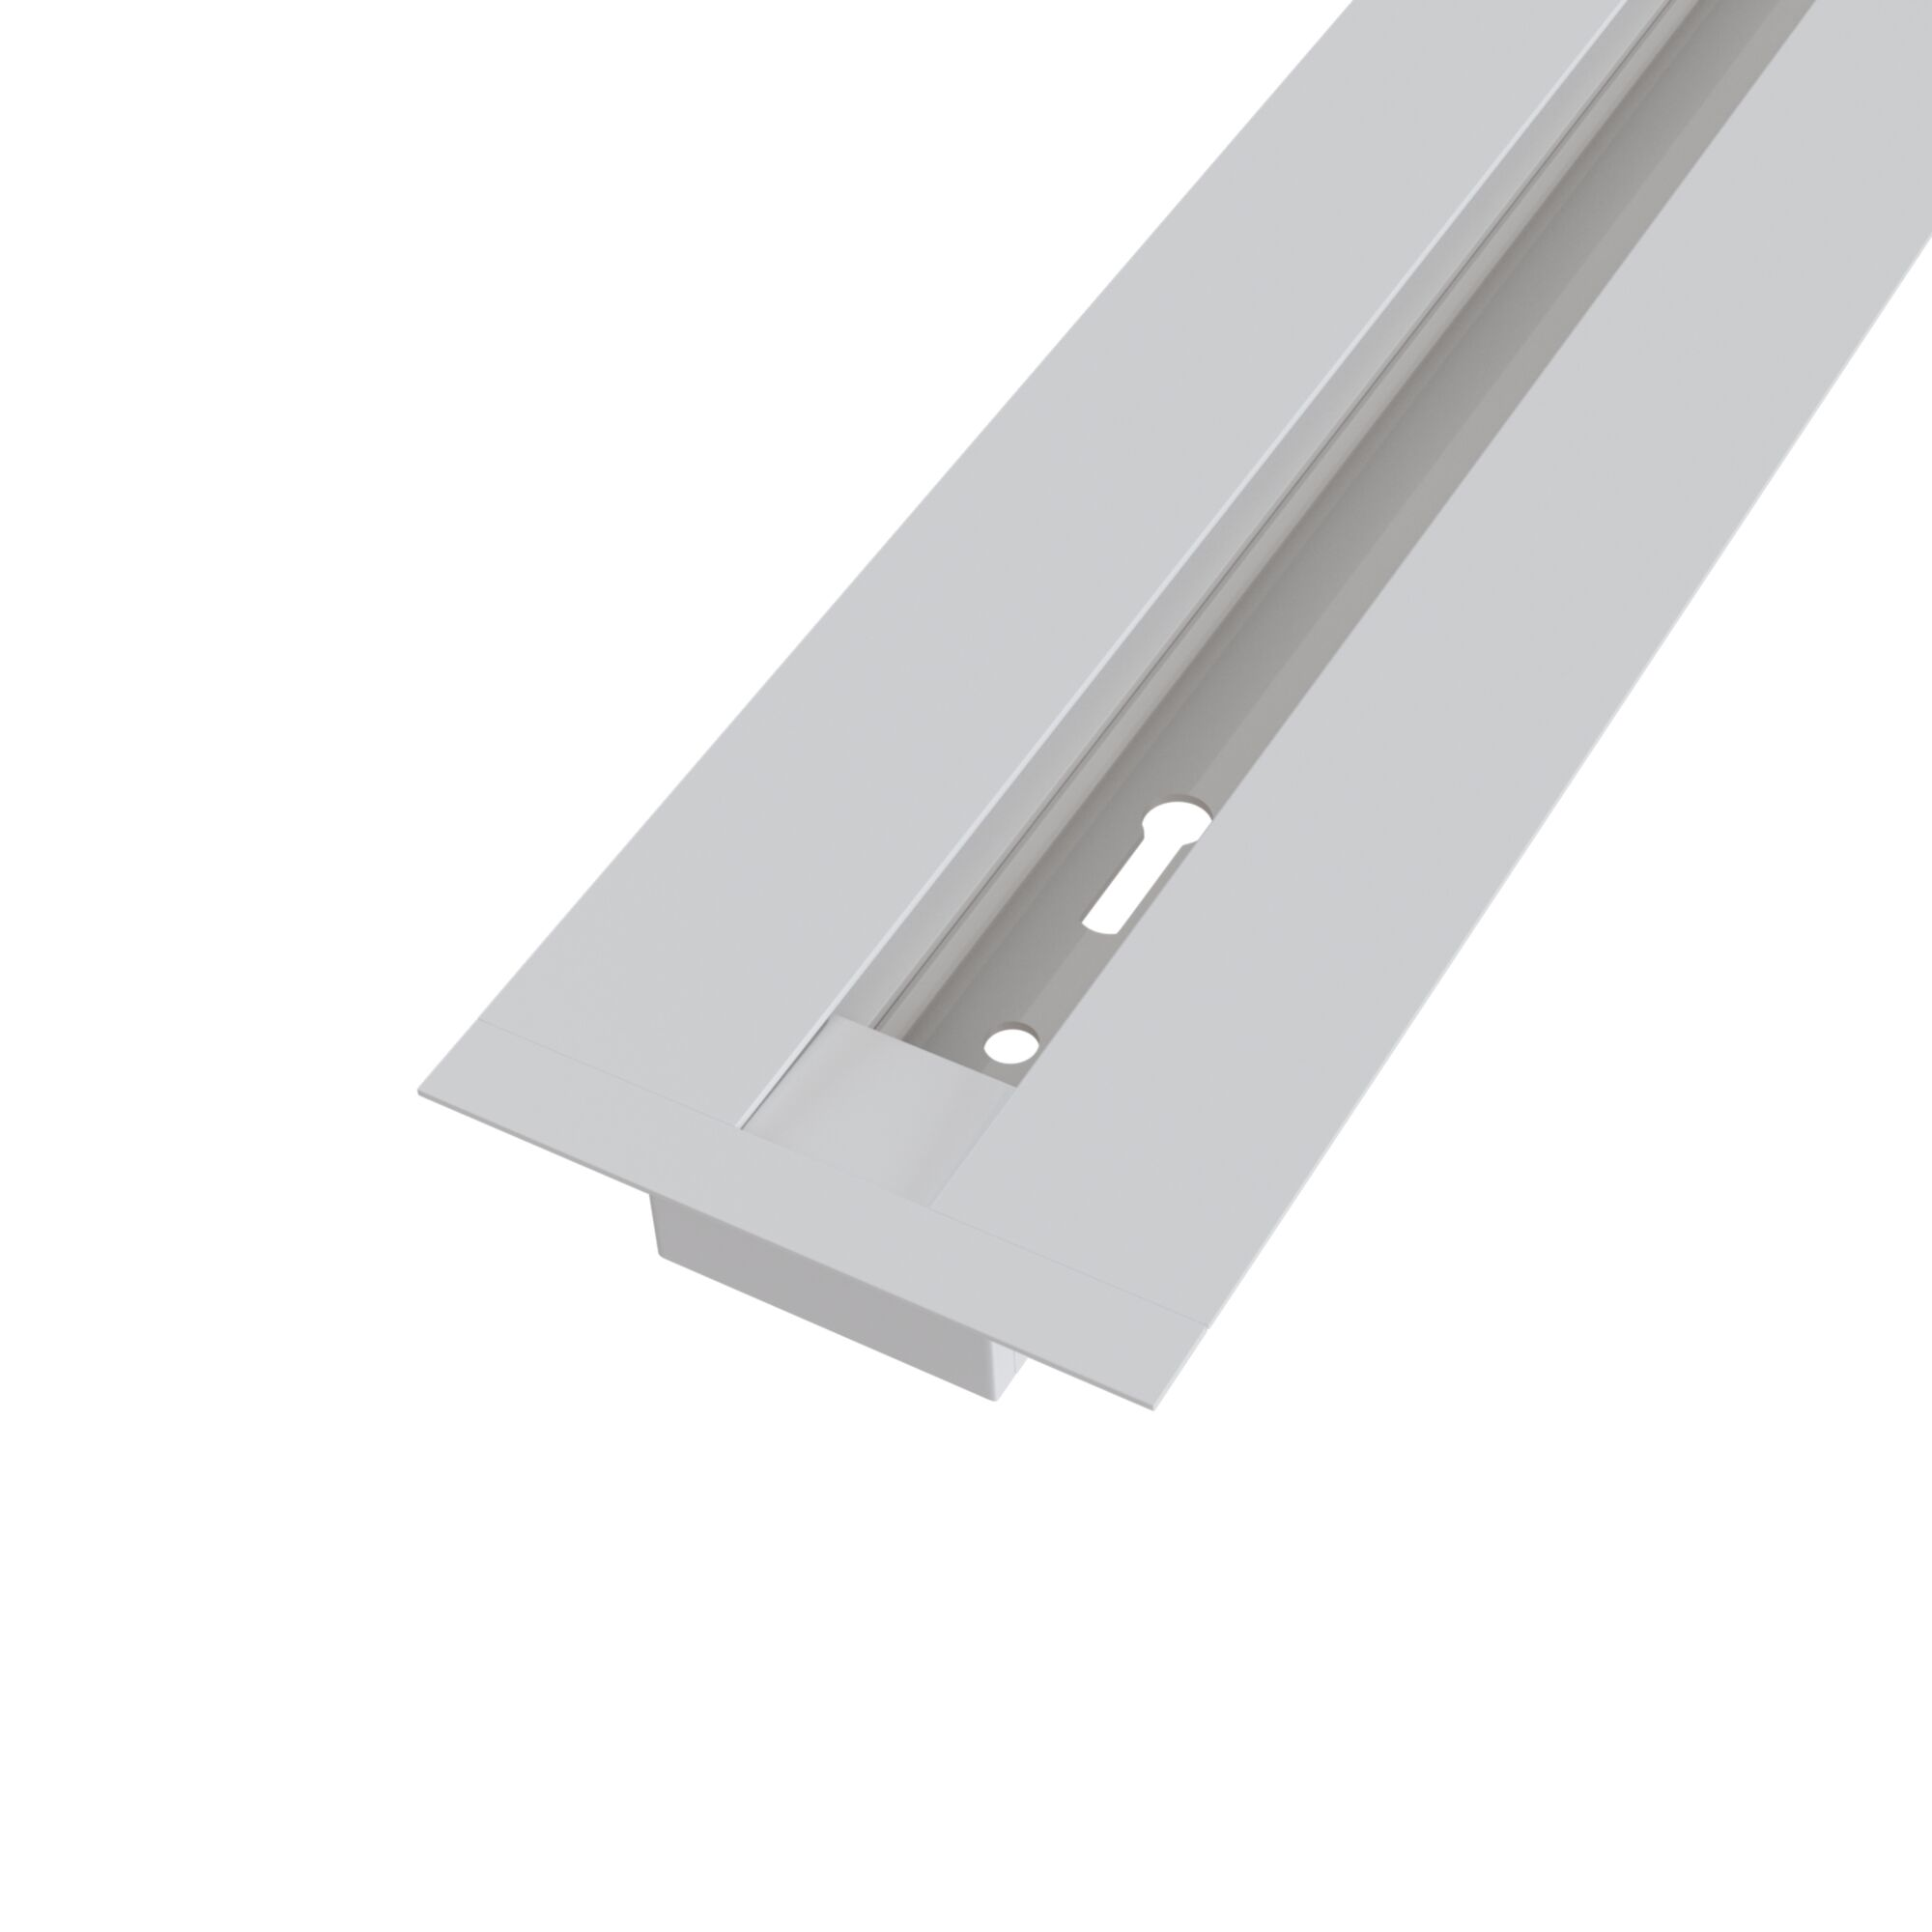 Трек накладной Maytoni Busbar trunkings TRX001-112B - фото и цена в Гродно